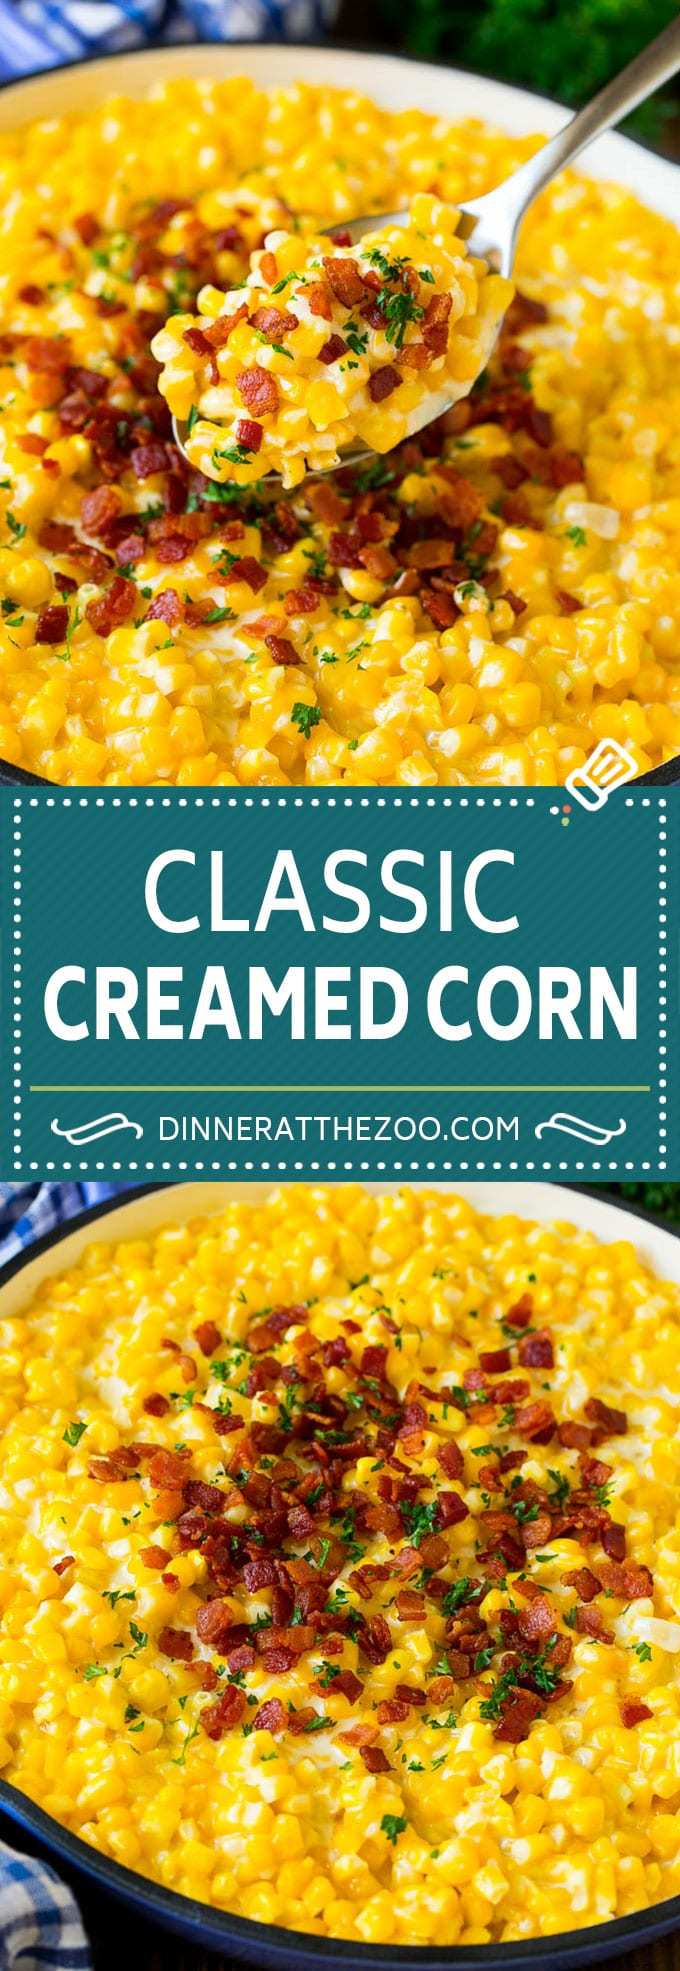 This creamed corn recipe consists of corn kernels simmered in cream sauce, then topped with crispy bacon and fresh herbs.